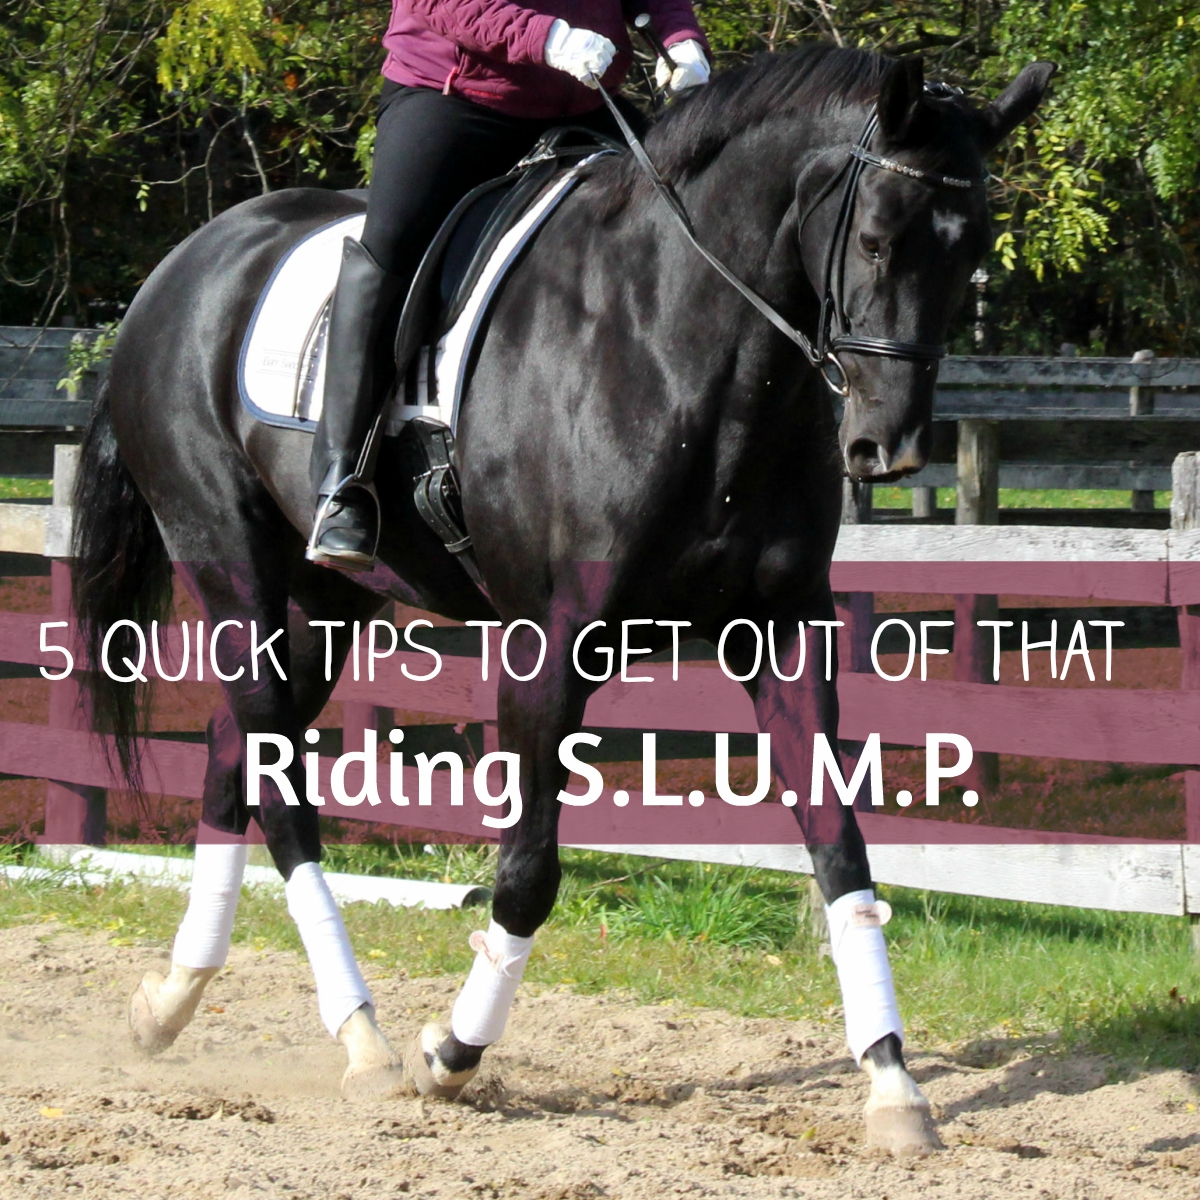 5 QuickTips To Get Out Of That Riding S.L.U.M.P.